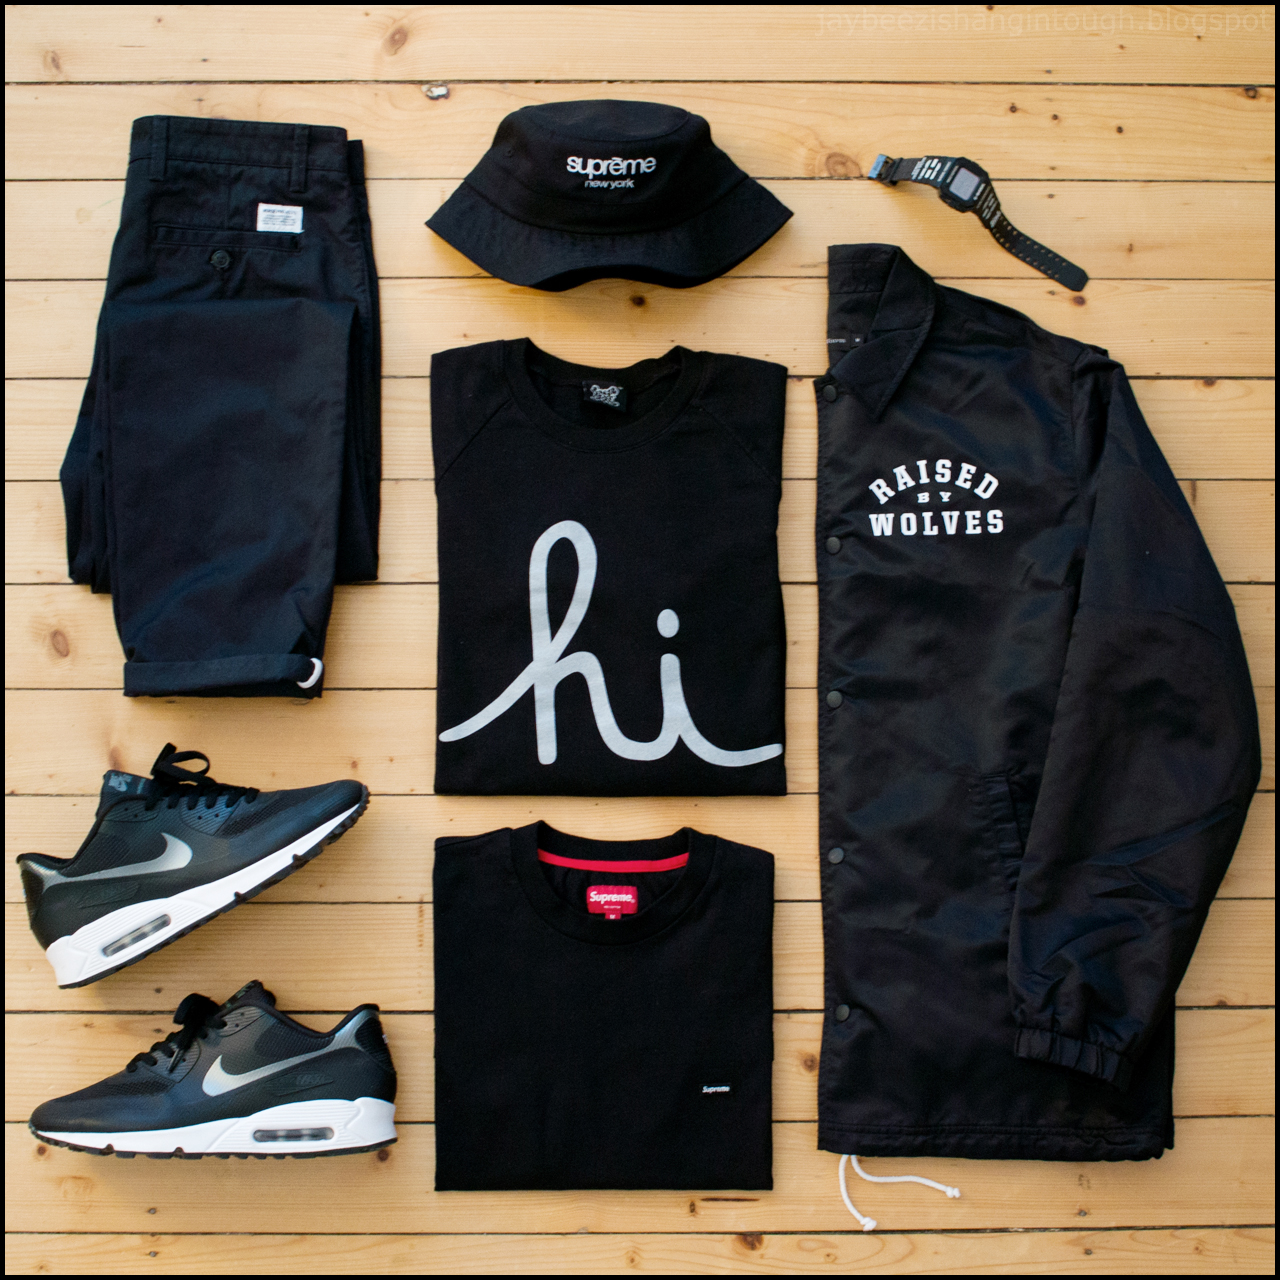 d9f3ca0aa52 ... crewneck. supreme small logo tee. norse projects aros heavy chino.  supreme classic logo crusher. nike iD air max 90 hyperfuse. alife x casio  g-shock.